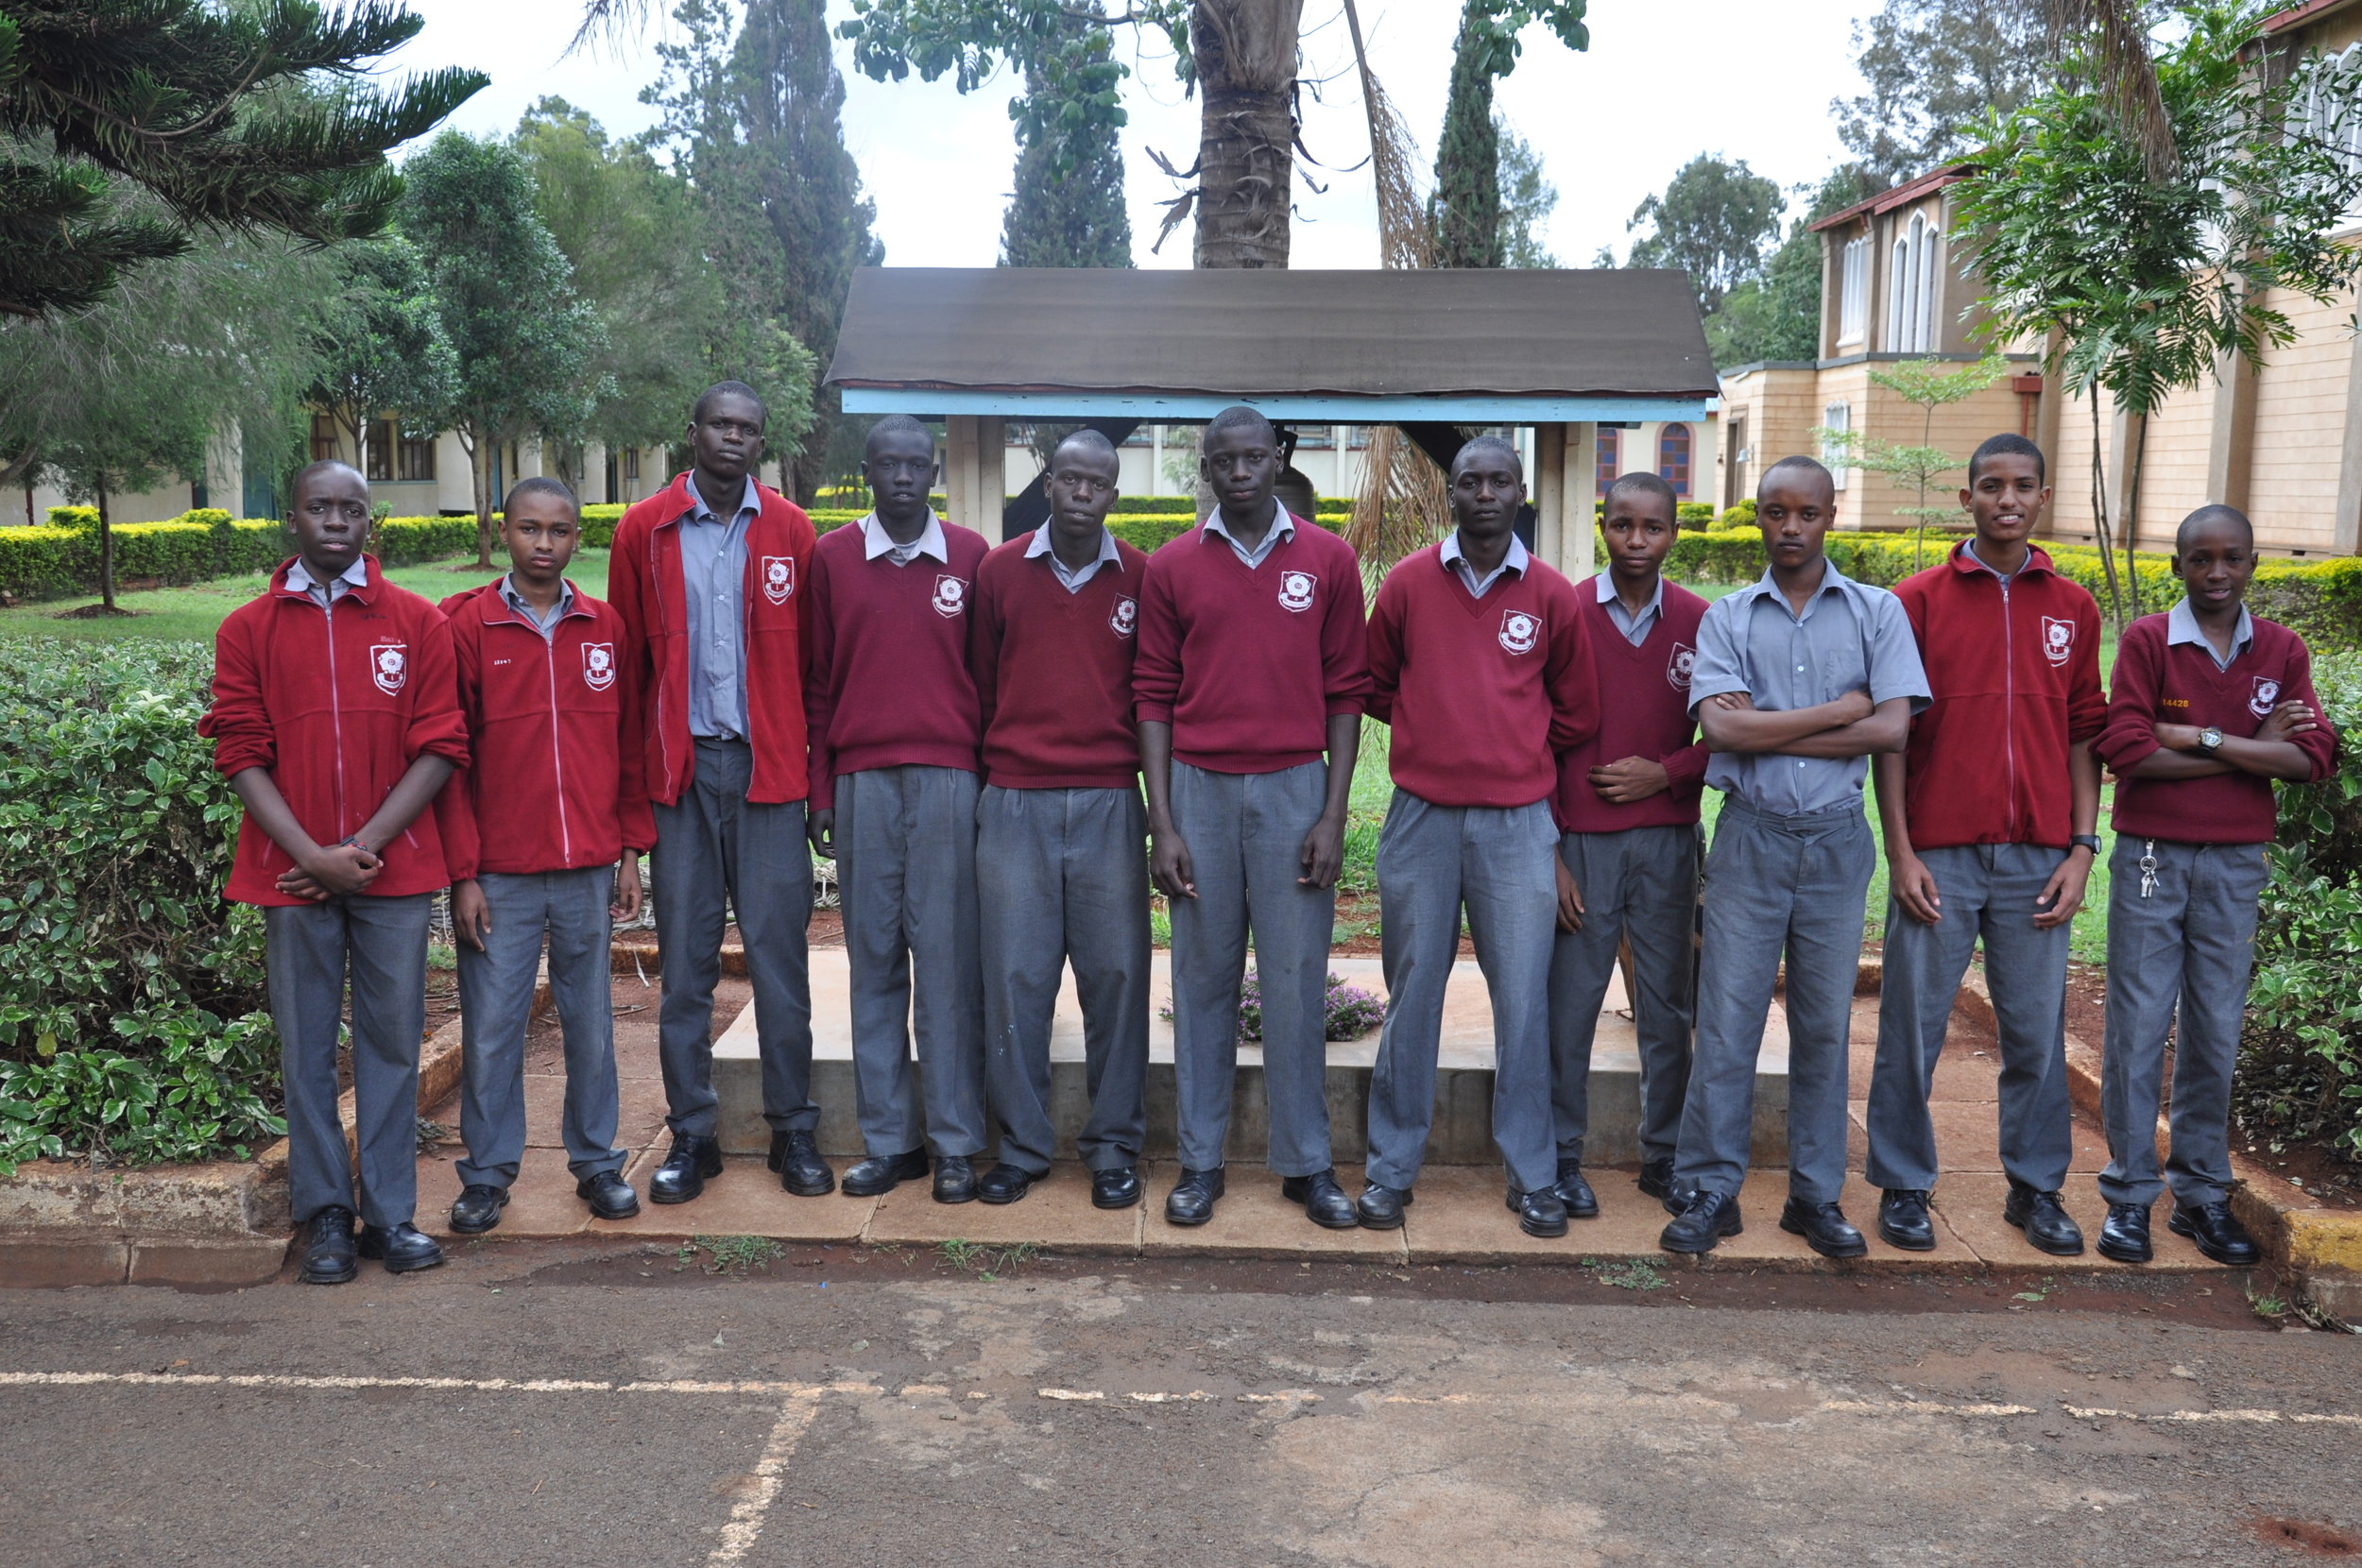 From left to right. Aswa Philip Khatiechi, Paul Ngabi mbarari, Mike Ambaka ,Abraham Mabior, Erastus Magak, Stephen Hayo, Alex Magoba, Lennox Kahati, Newton Wachira, Abdul-Aziz Shemaka, Kevin Gitahi